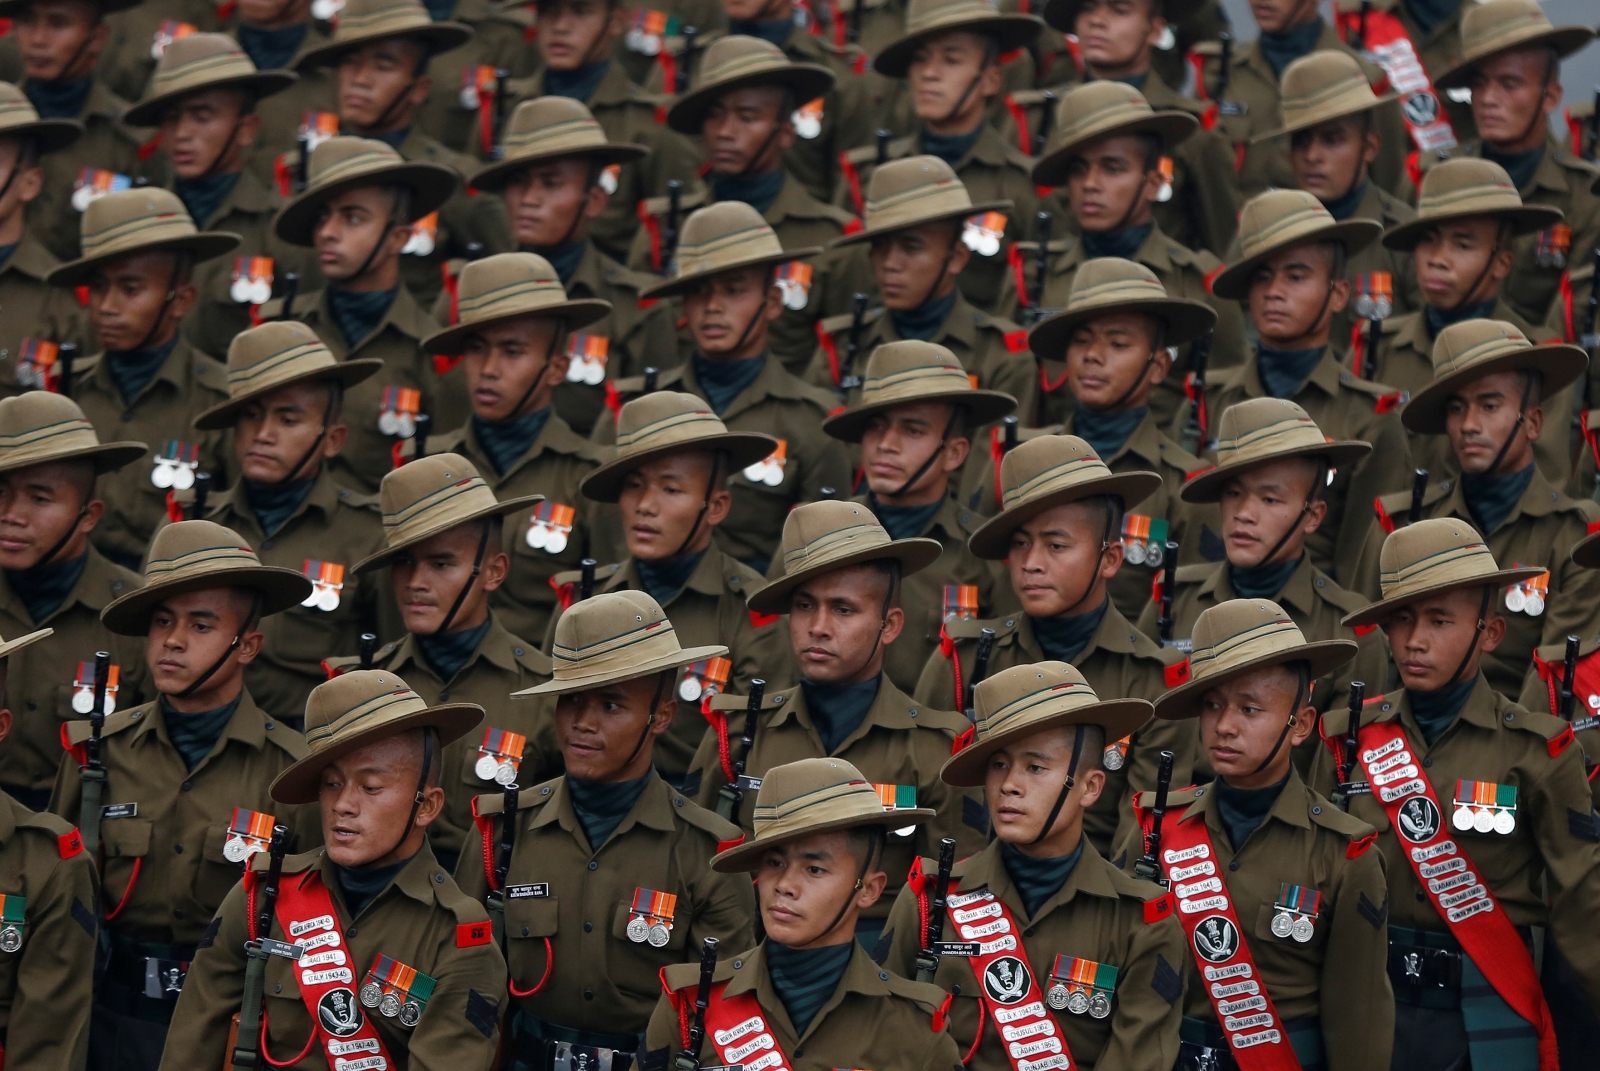 India and China deploy thousands of troops near restive